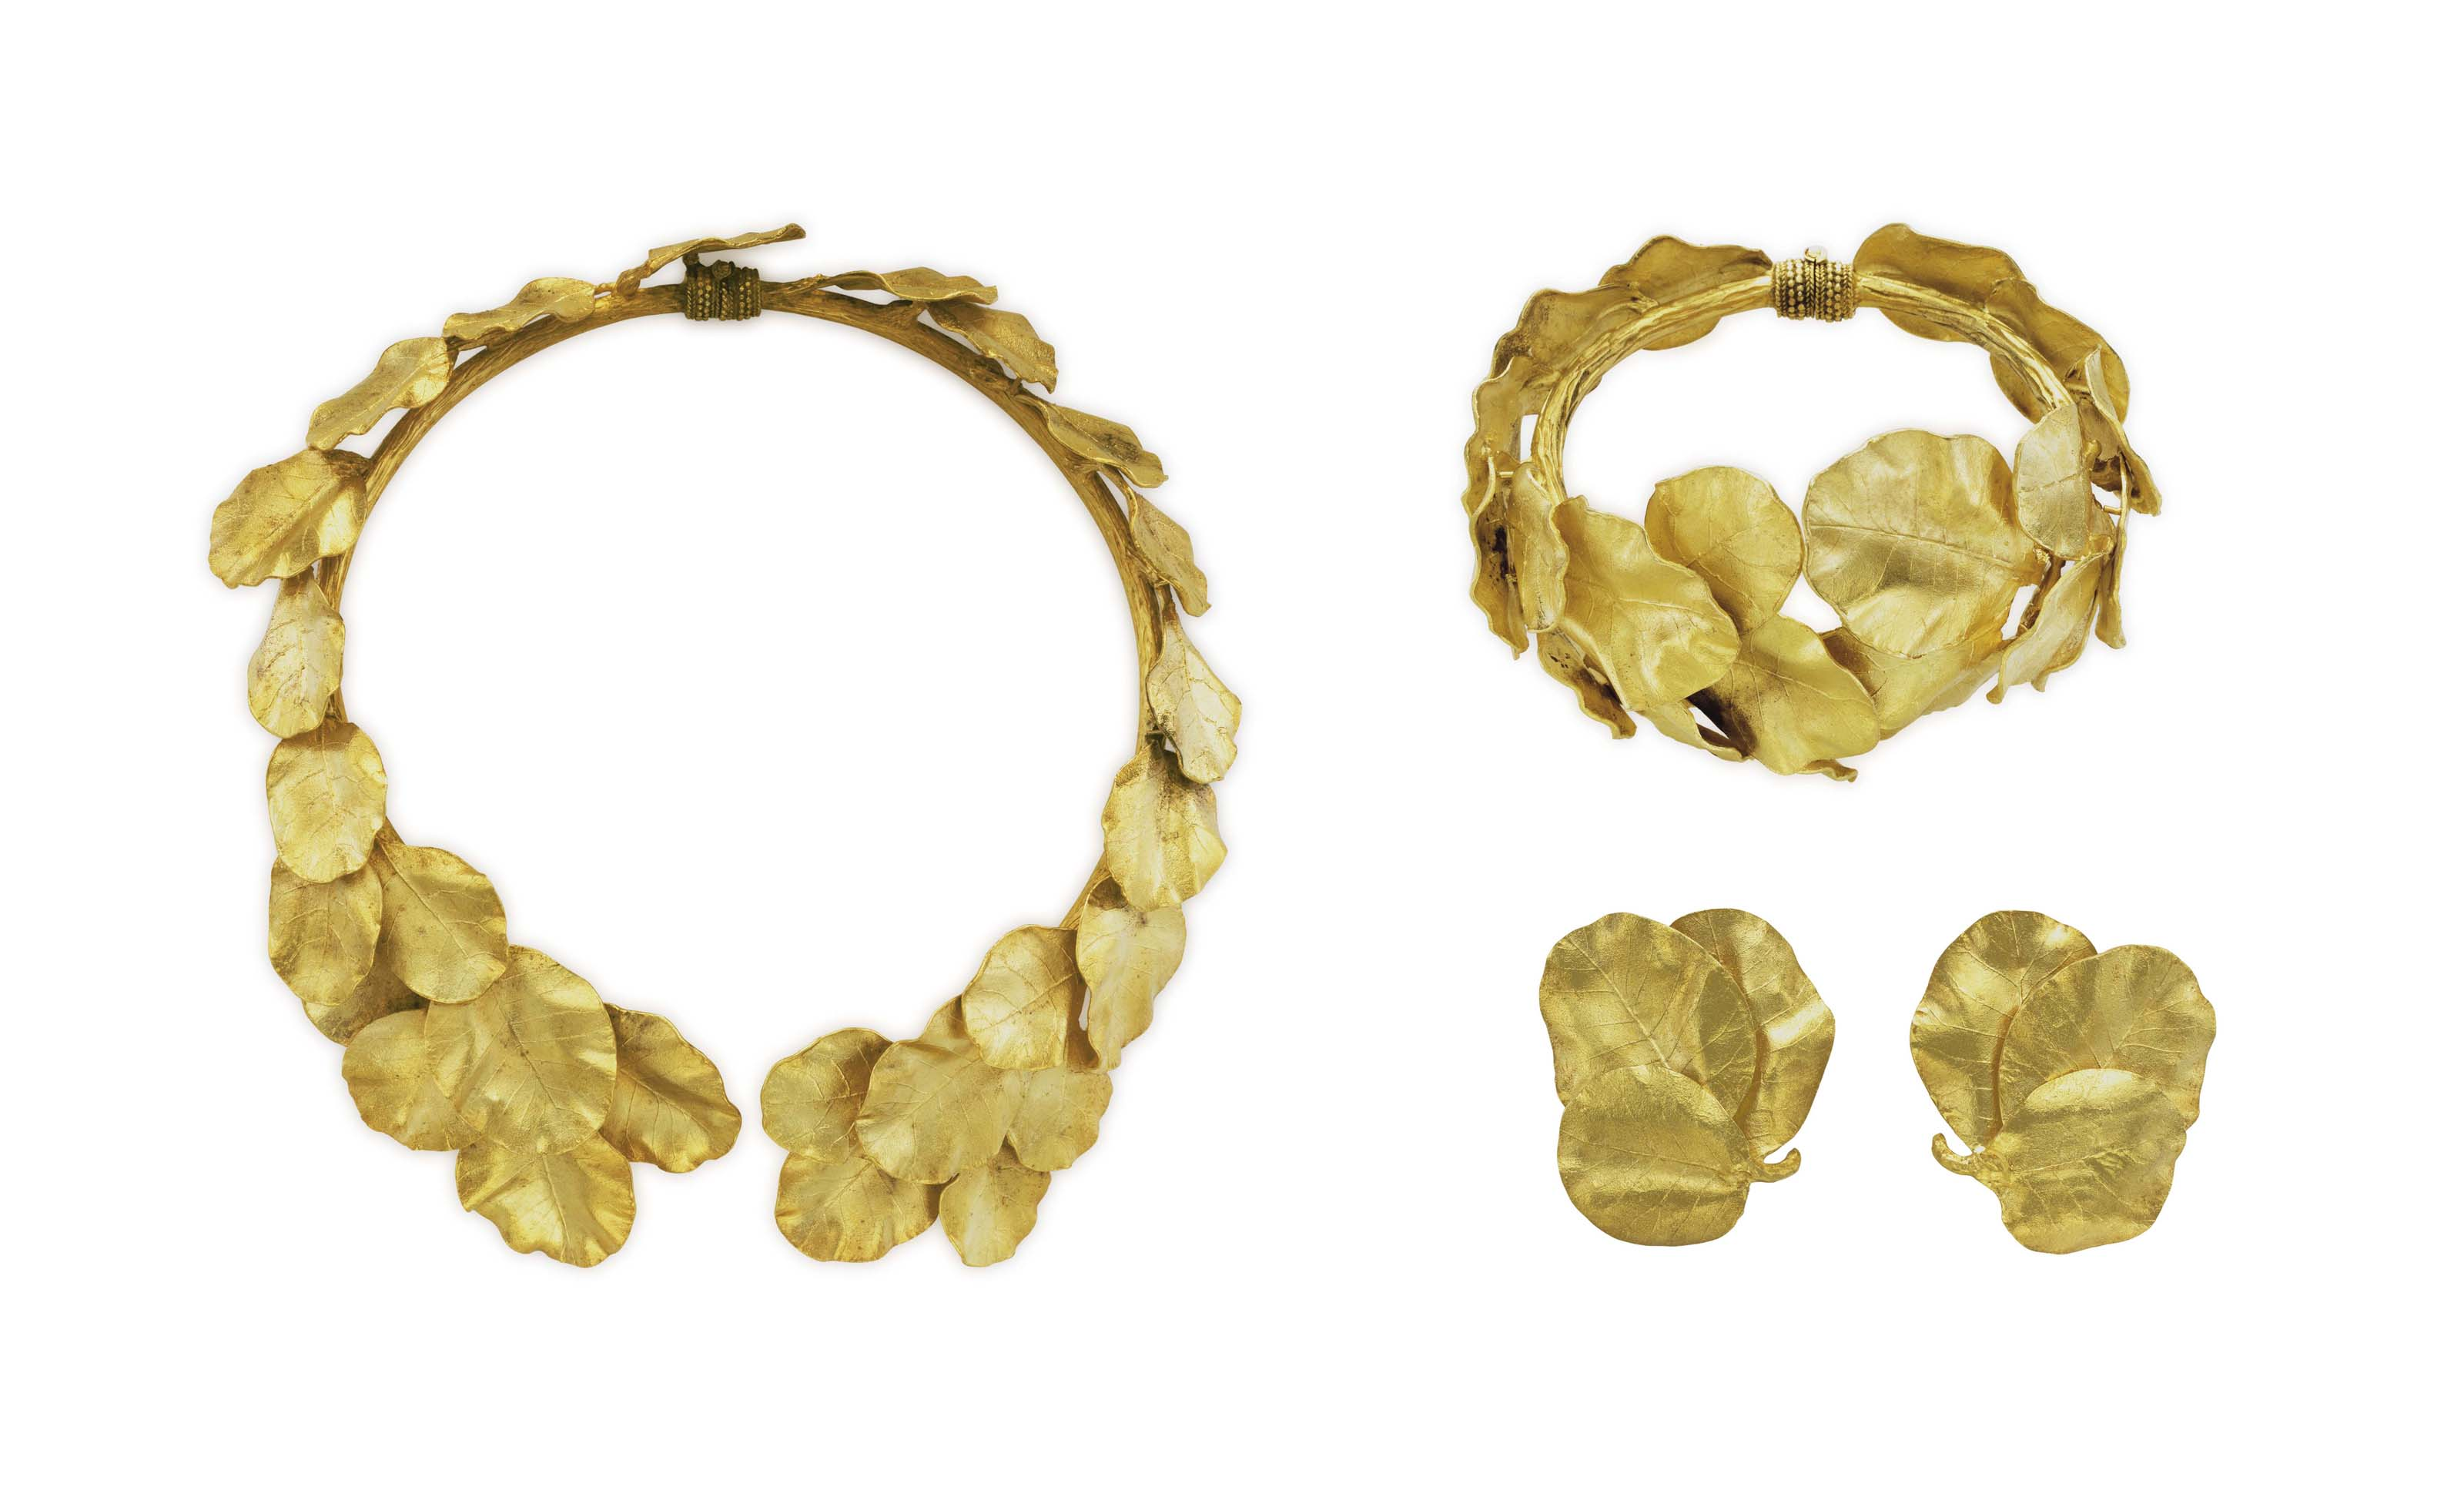 A SUITE OF GOLD JEWELRY, BY ZOLOTAS